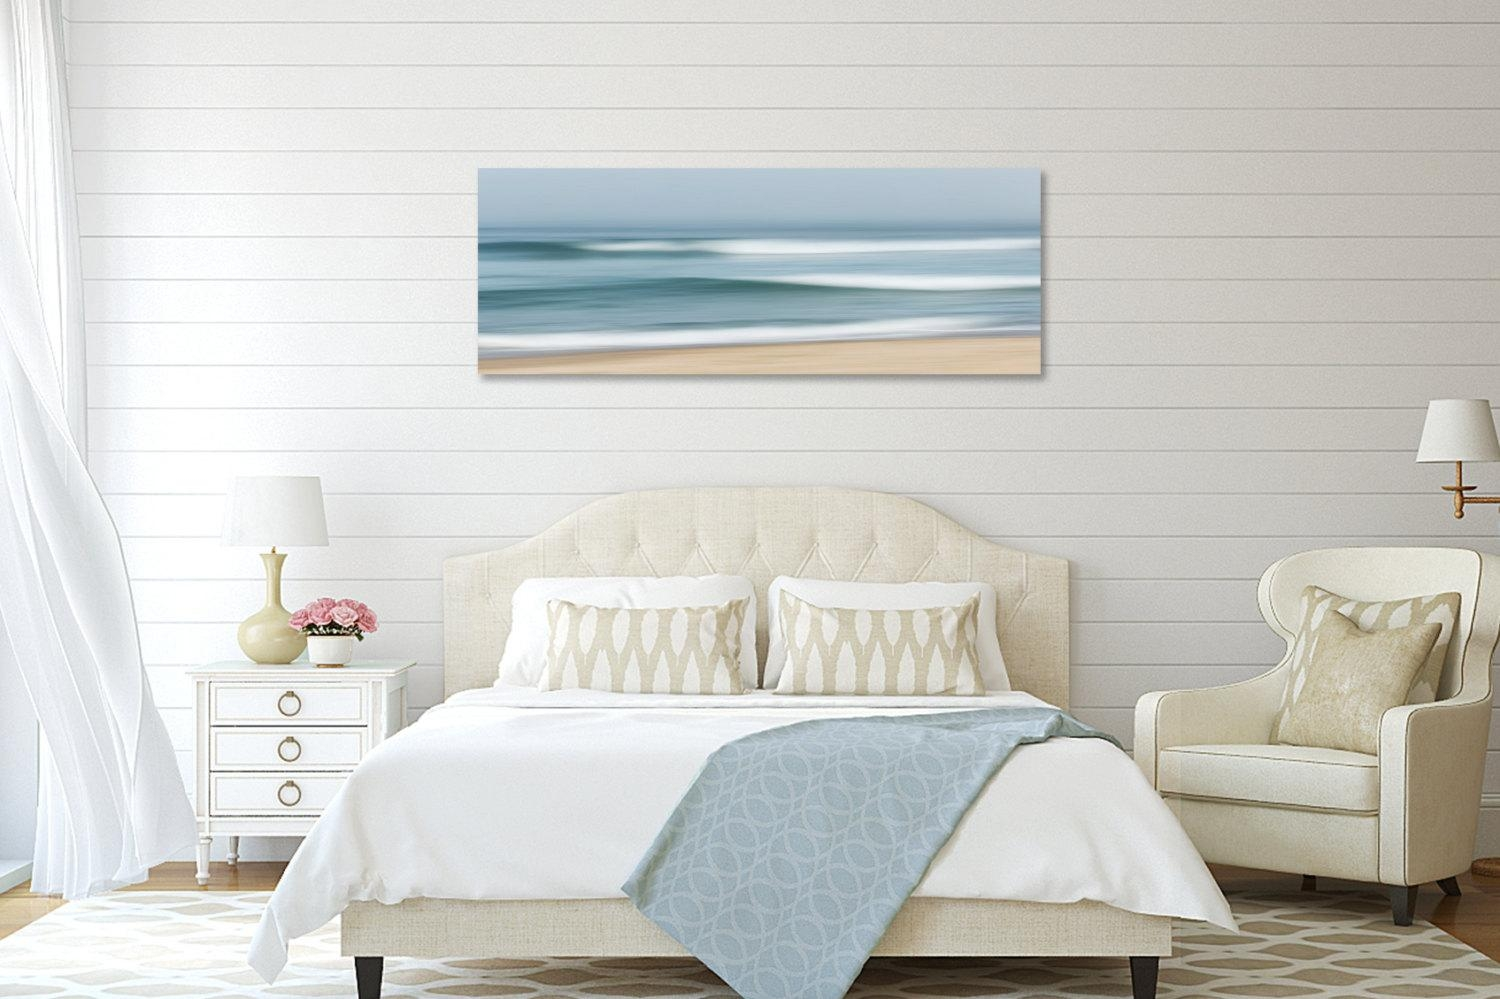 Large Abstract Beach Canvas Wall Art Ocean Seascape In Beach Wall Art For Bedroom (Image 18 of 20)